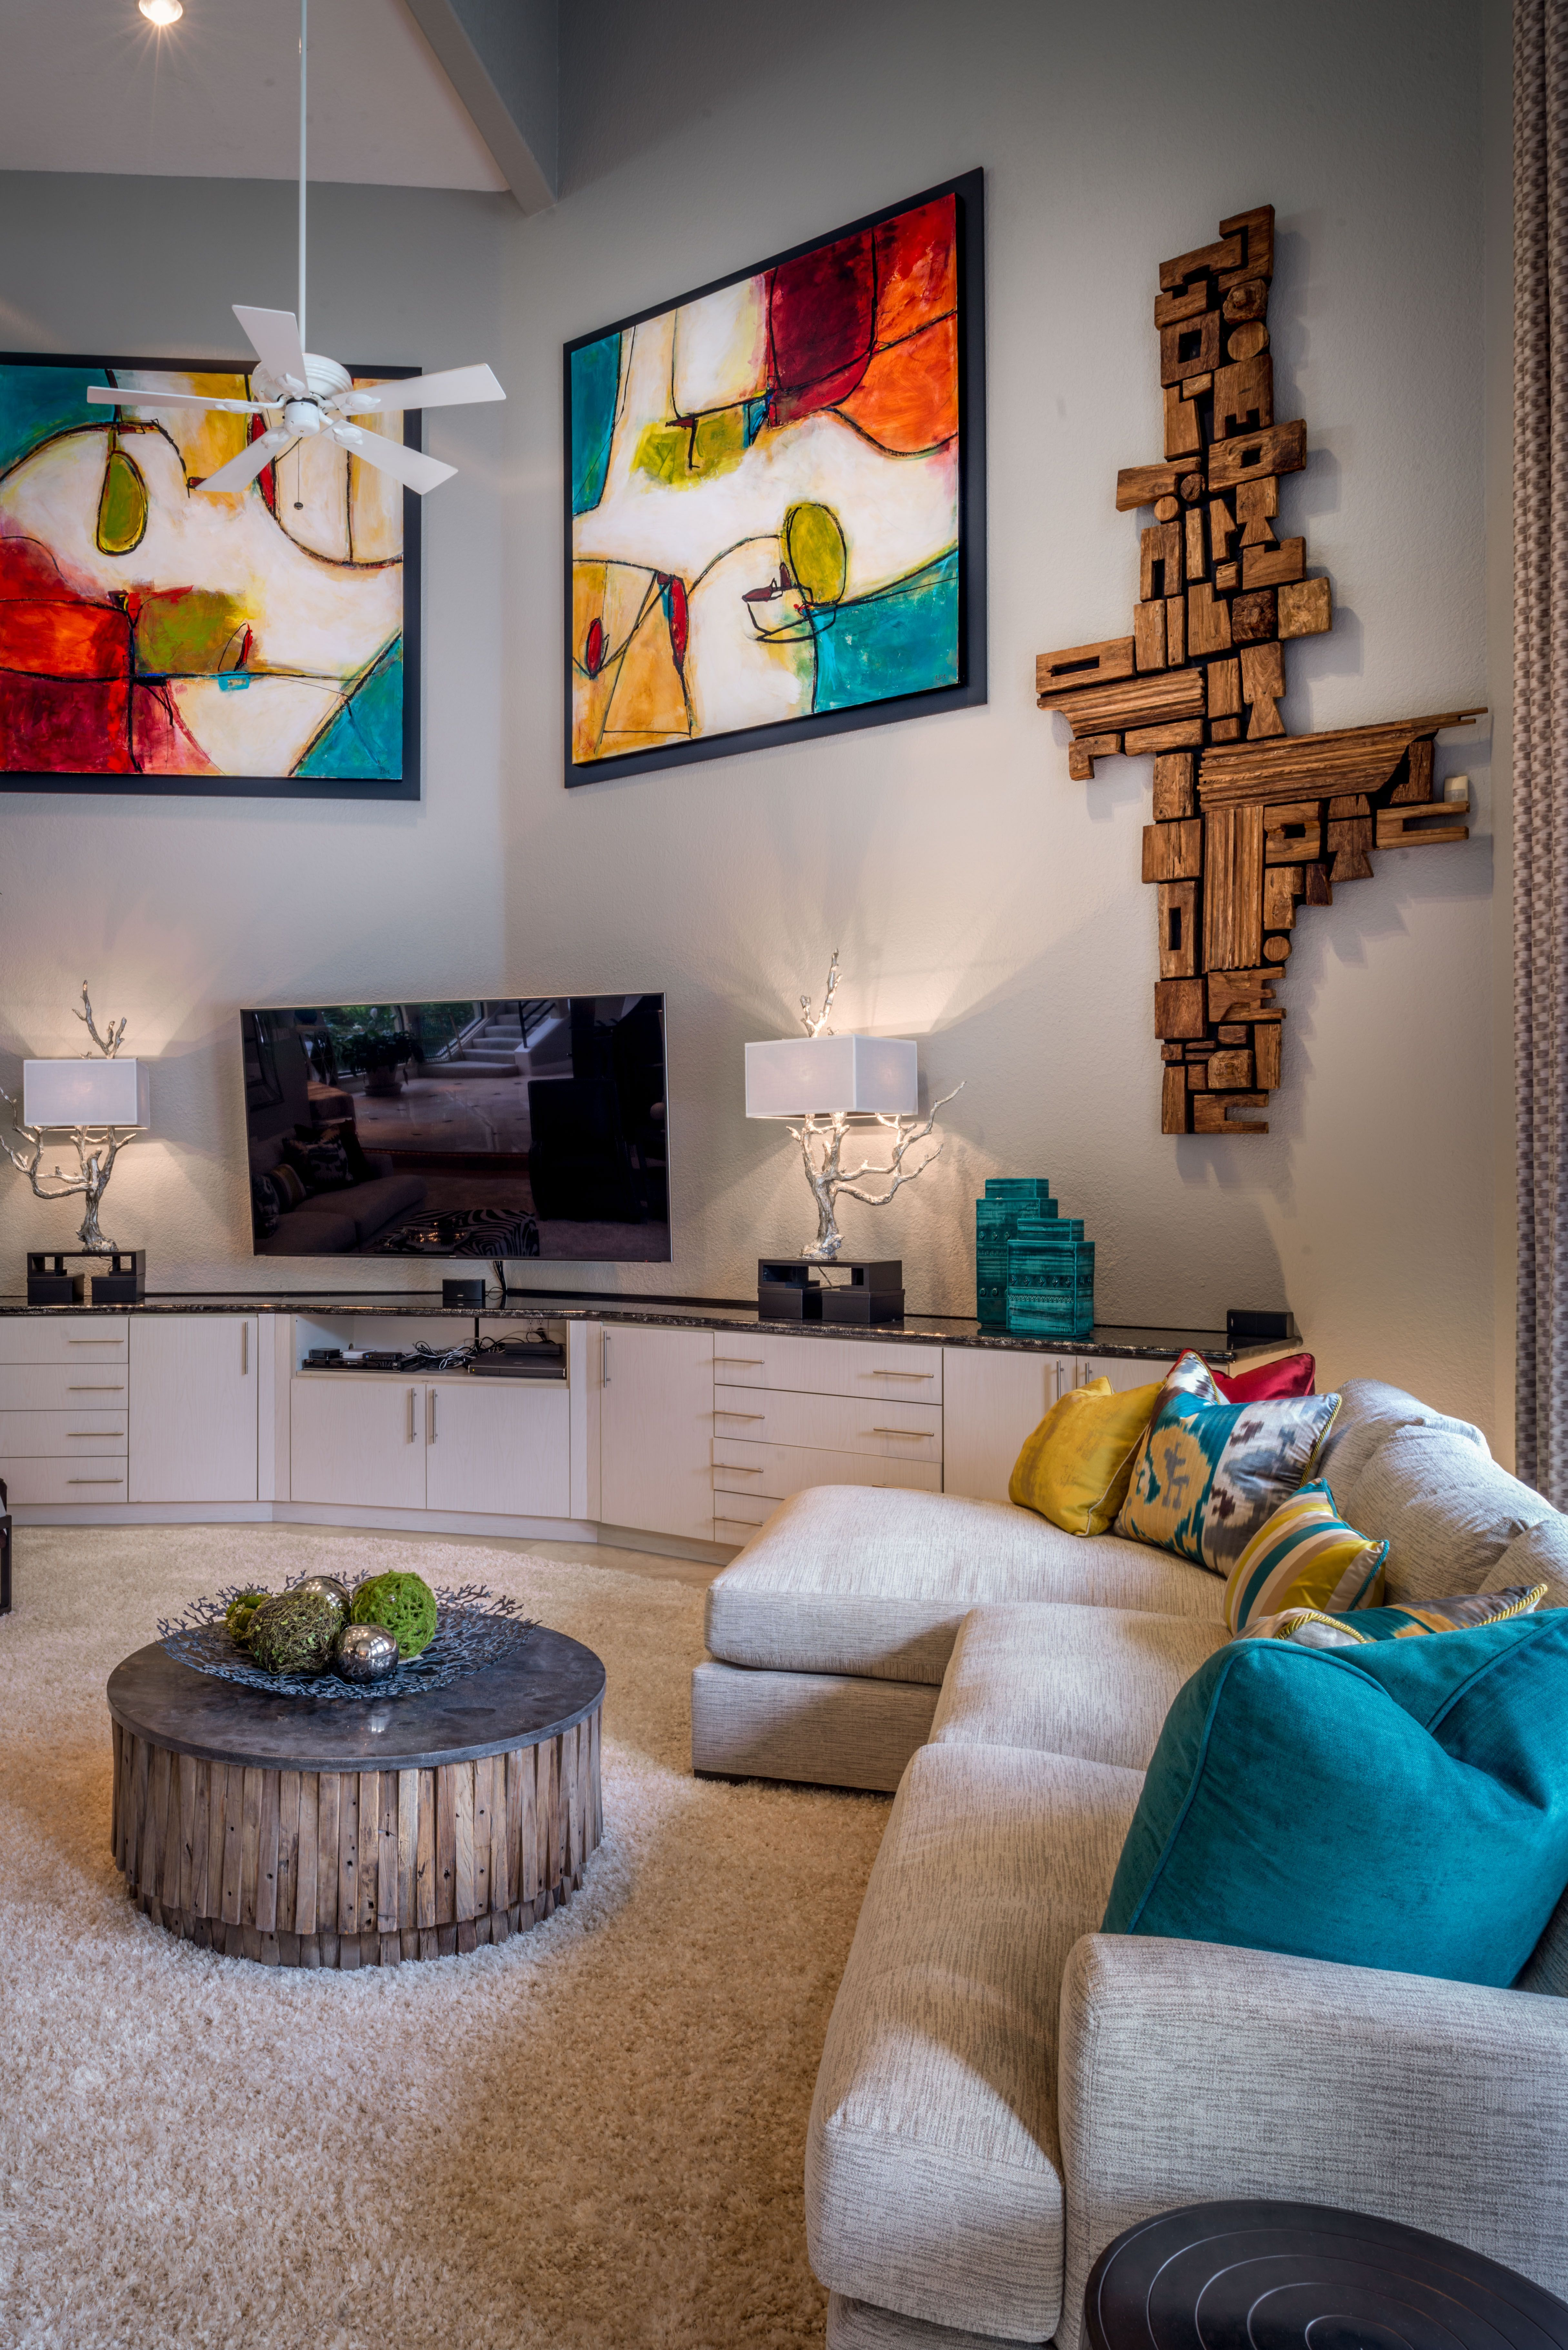 Designed By The Design Firm In Stafford, Texas #interiors  #interiordesignideas #design #interiordesign #interiordesigners #livingroom